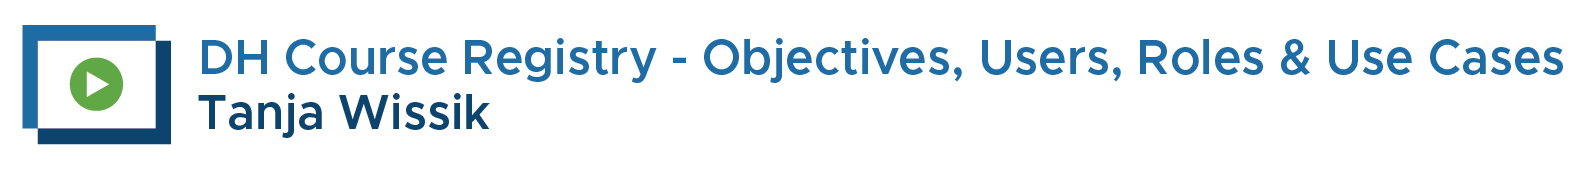 Objectives, Users, Roles & Use Cases, Tanja Wissik